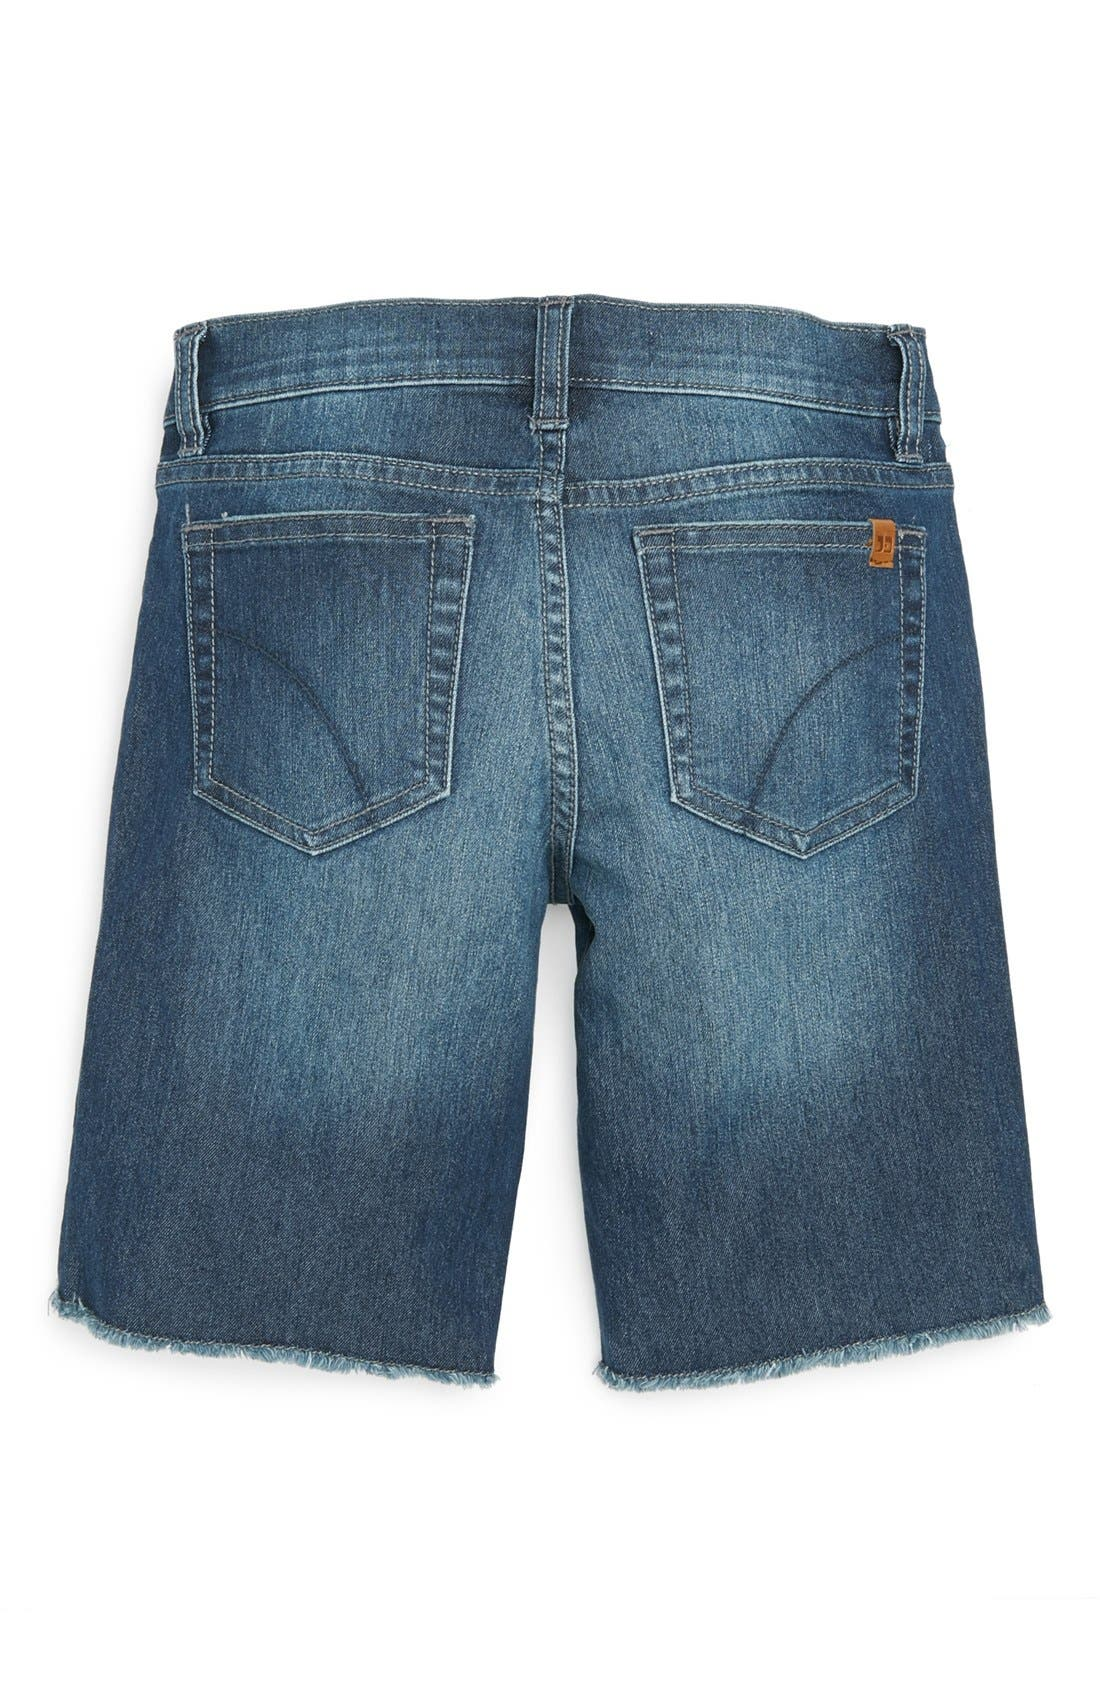 Alternate Image 1 Selected - Joe's Frayed Bermuda Shorts (Big Girls)